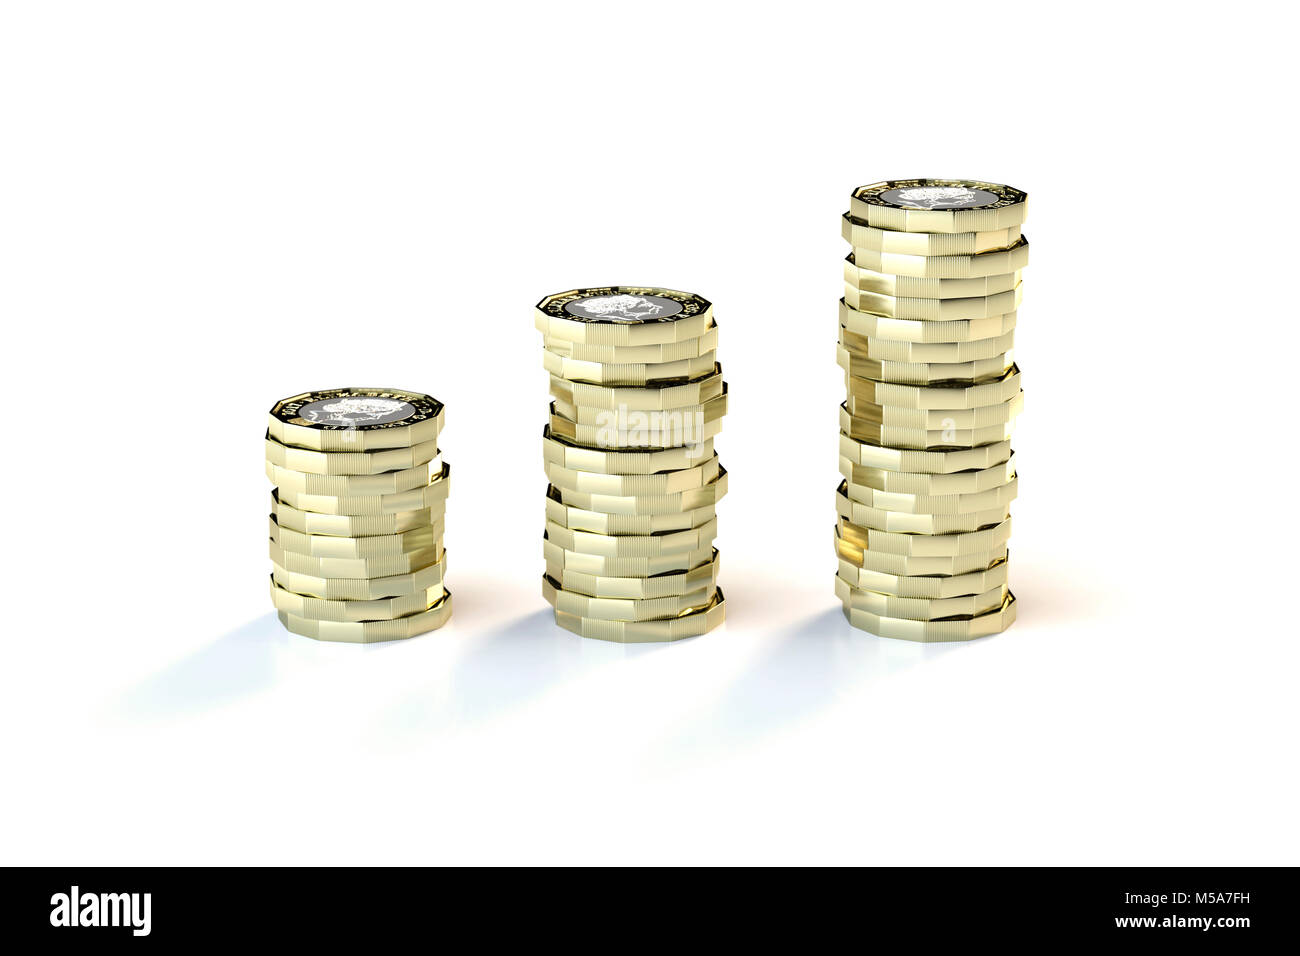 Making money saving money - new 2017 £1 one pound coins sterling rising in value and height - Stock Image